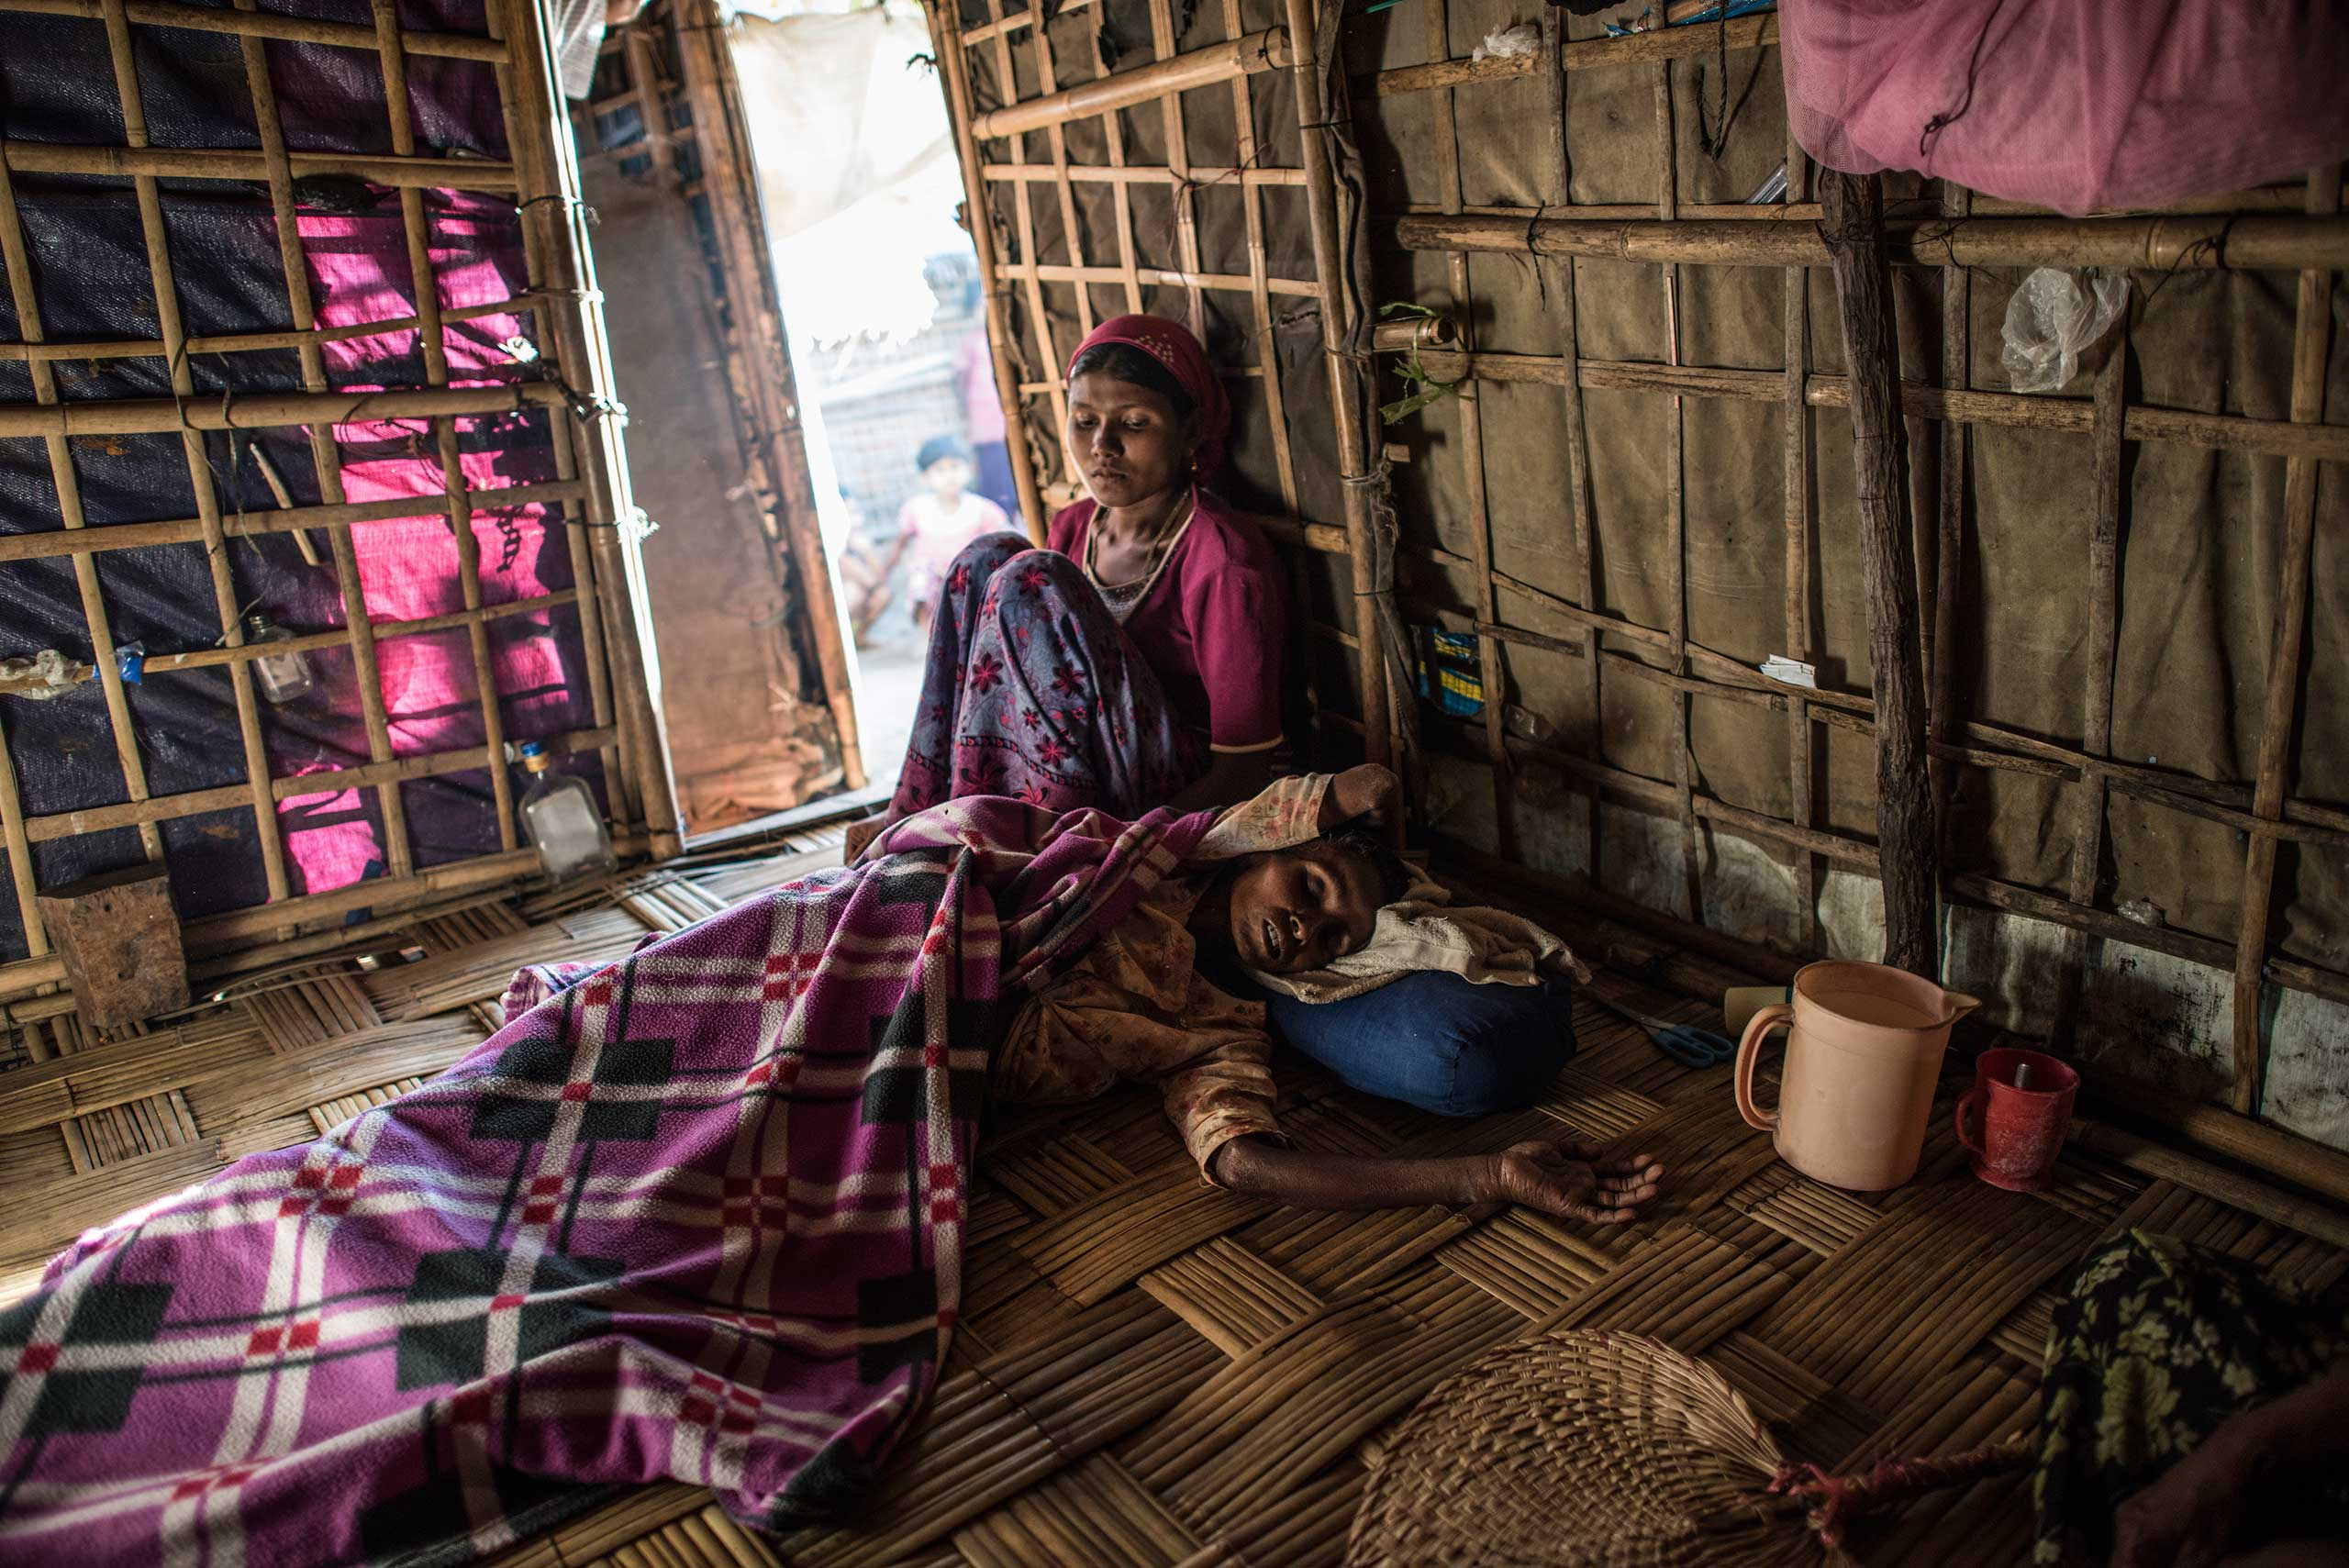 """Sumeir, 35, is comforted by her daughter as she lies semi-conscious on the floor of her family's home a few days after surgery at the Sittwe hospital, outside of the Thay Chaung camp, Sittwe, Myanmar, Nov. 24, 2015.  For many years, Sumeir suffered from excruciating stomach pain. She went to the That Kay Pyin Emmergency hospital within the IDP camp, and was referred to Sittwe hospital, outside of the camp.  She was operated on a few days prior in Sittwe, and quickly discharged and returned to the IDP camp at Thay Chaung, allegedly without post-operative care, information about her condition, and without medication for healing. She passed away the day after this picture was taken.   """"We are not dogs, we are not cows, we are people. There is a difference in how they treat us. They leave us to our own devices."""" In the hospital, there is a lot of discrimination,"""" Azumeir says.  The Rohingya in Myanmar are routinely denied proper medical care—within the camps around Sittwe, the only  available medical care is at the emergency hospital, and both medical staff and prescription drugs are limited. Anyone with a serious condition may be referred to Sittwe, but the Rohingya often don't trust government hospitals, and do not have the money to pay for meals and any additional expenses outside of treatment.  Lack of medical care is one of the biggest concerns for the Rohingya."""